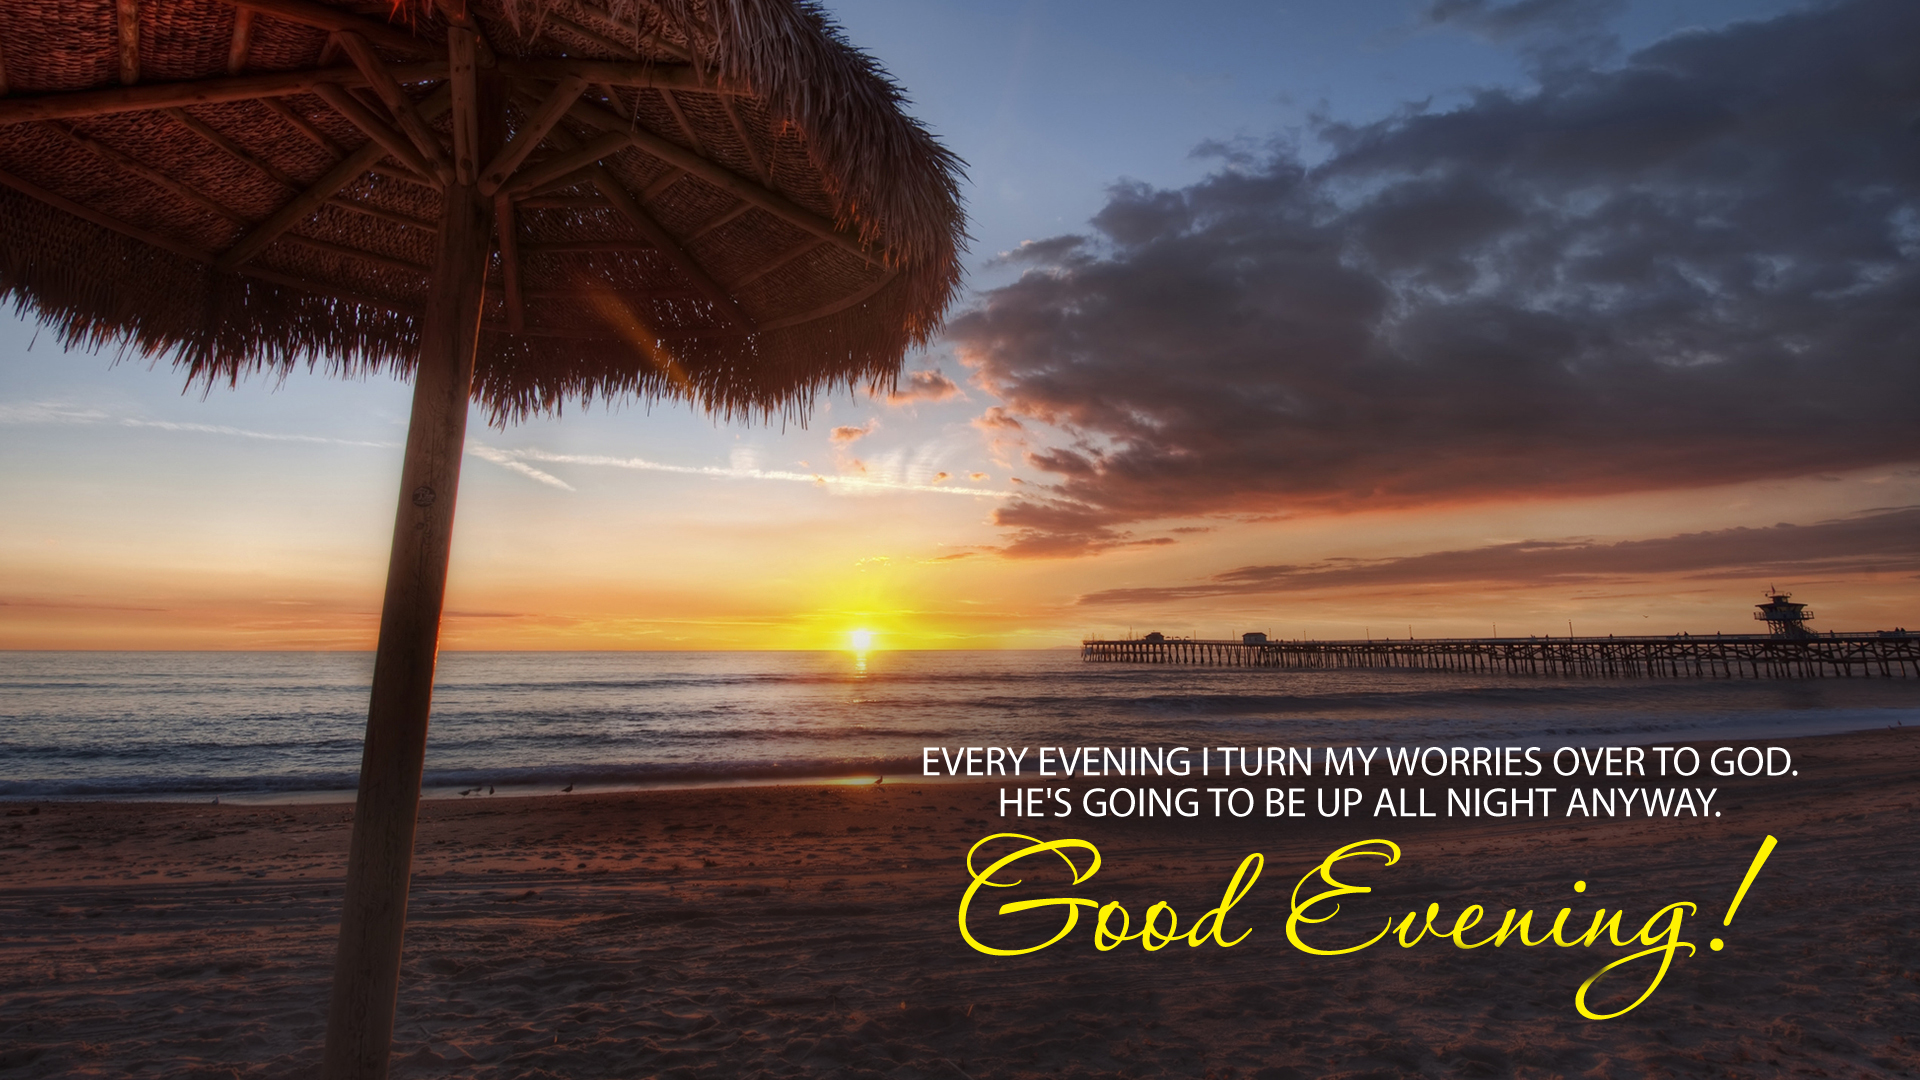 Good Evening HD Wallpaper Download